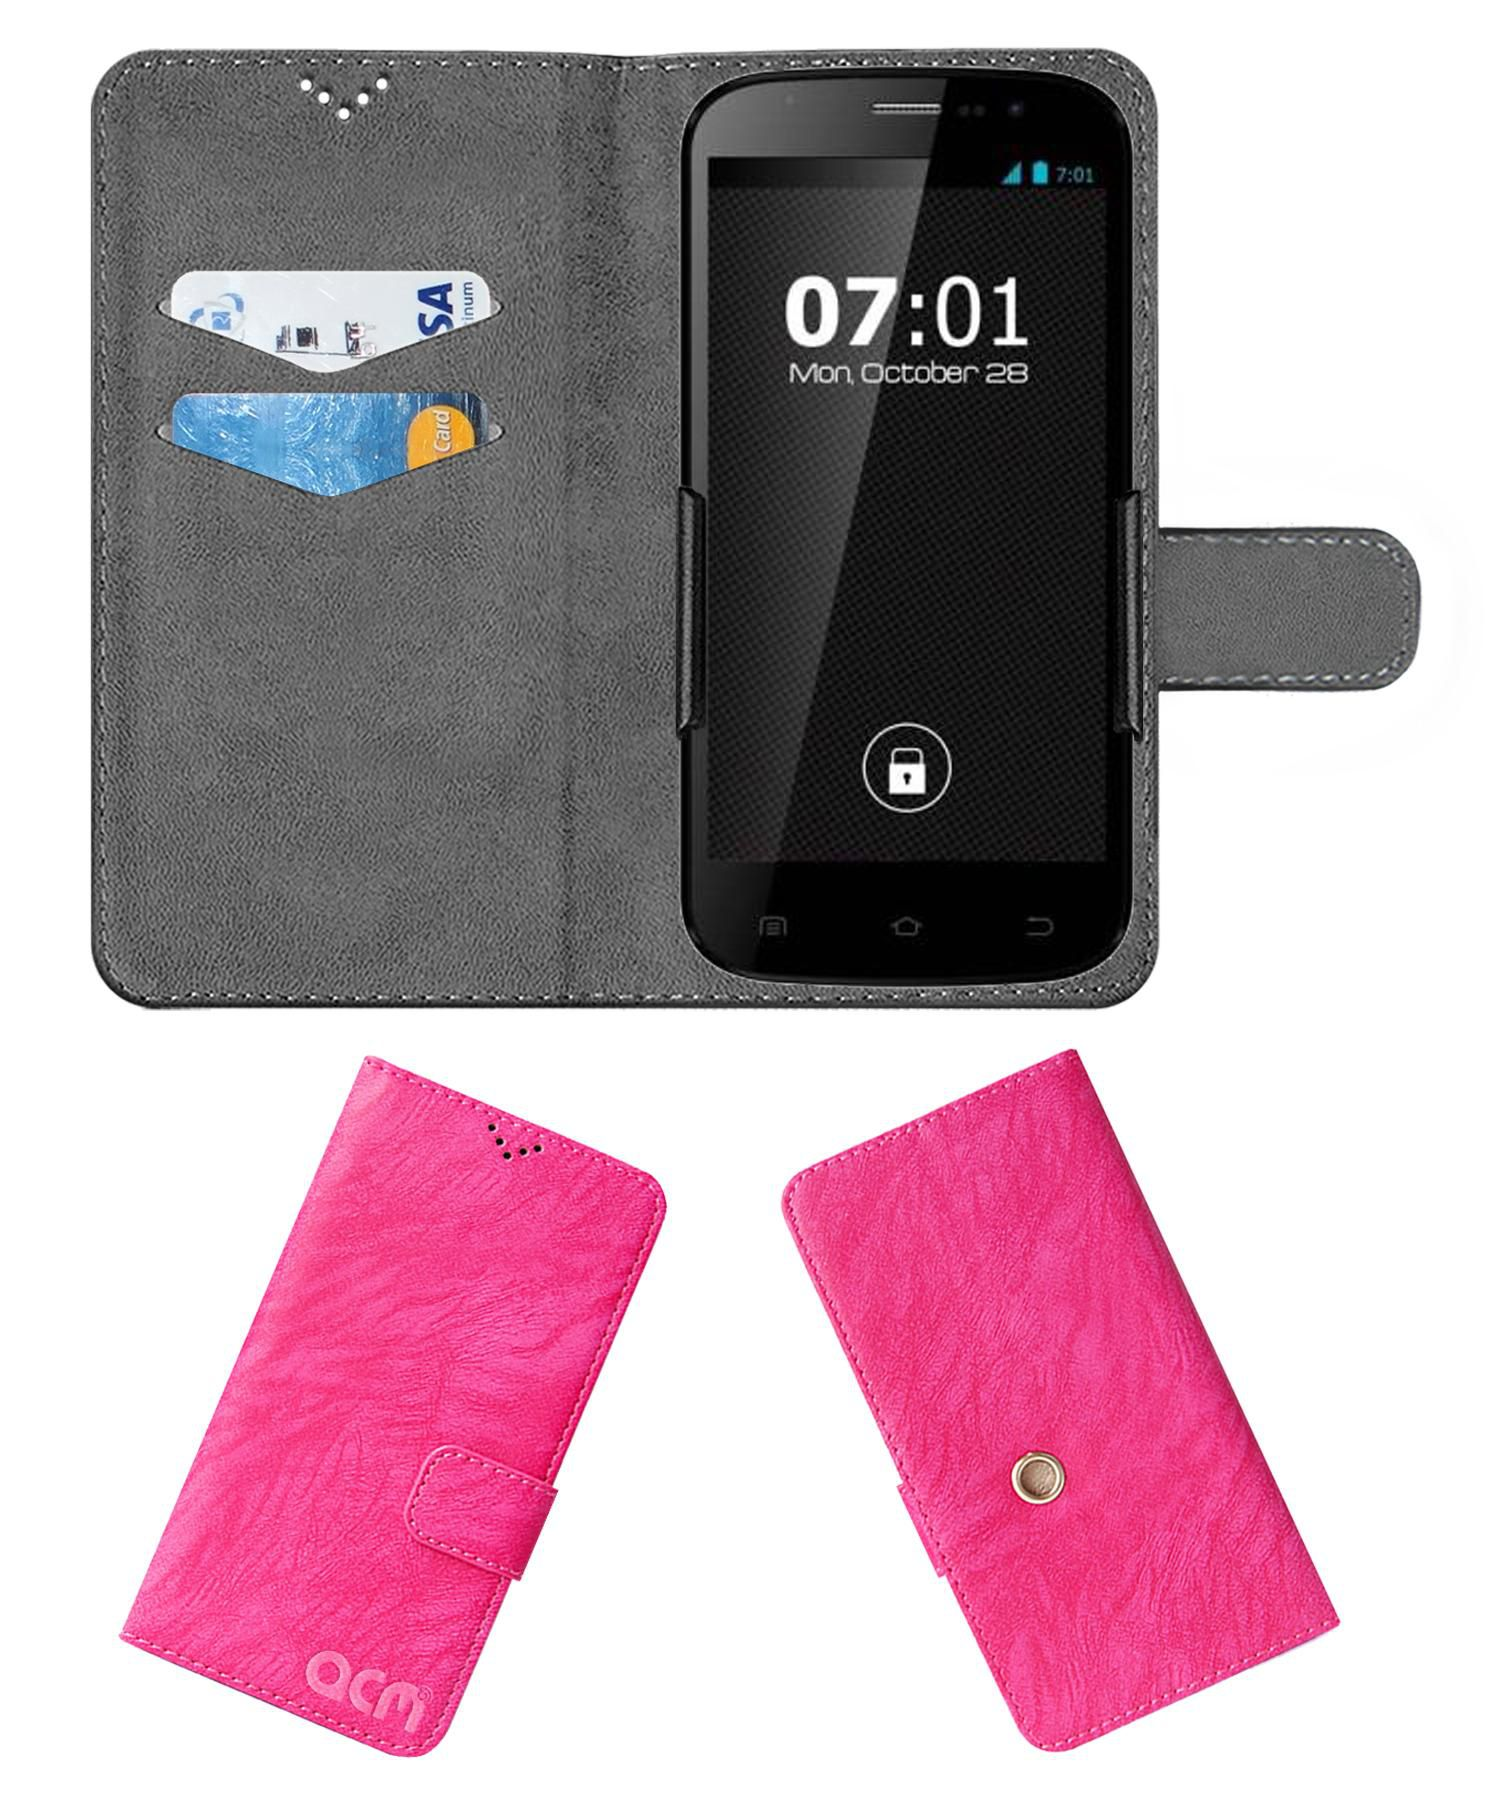 Zen Ultrafone 701 FHD Flip Cover by ACM - Pink Clip holder to hold your mobile securely